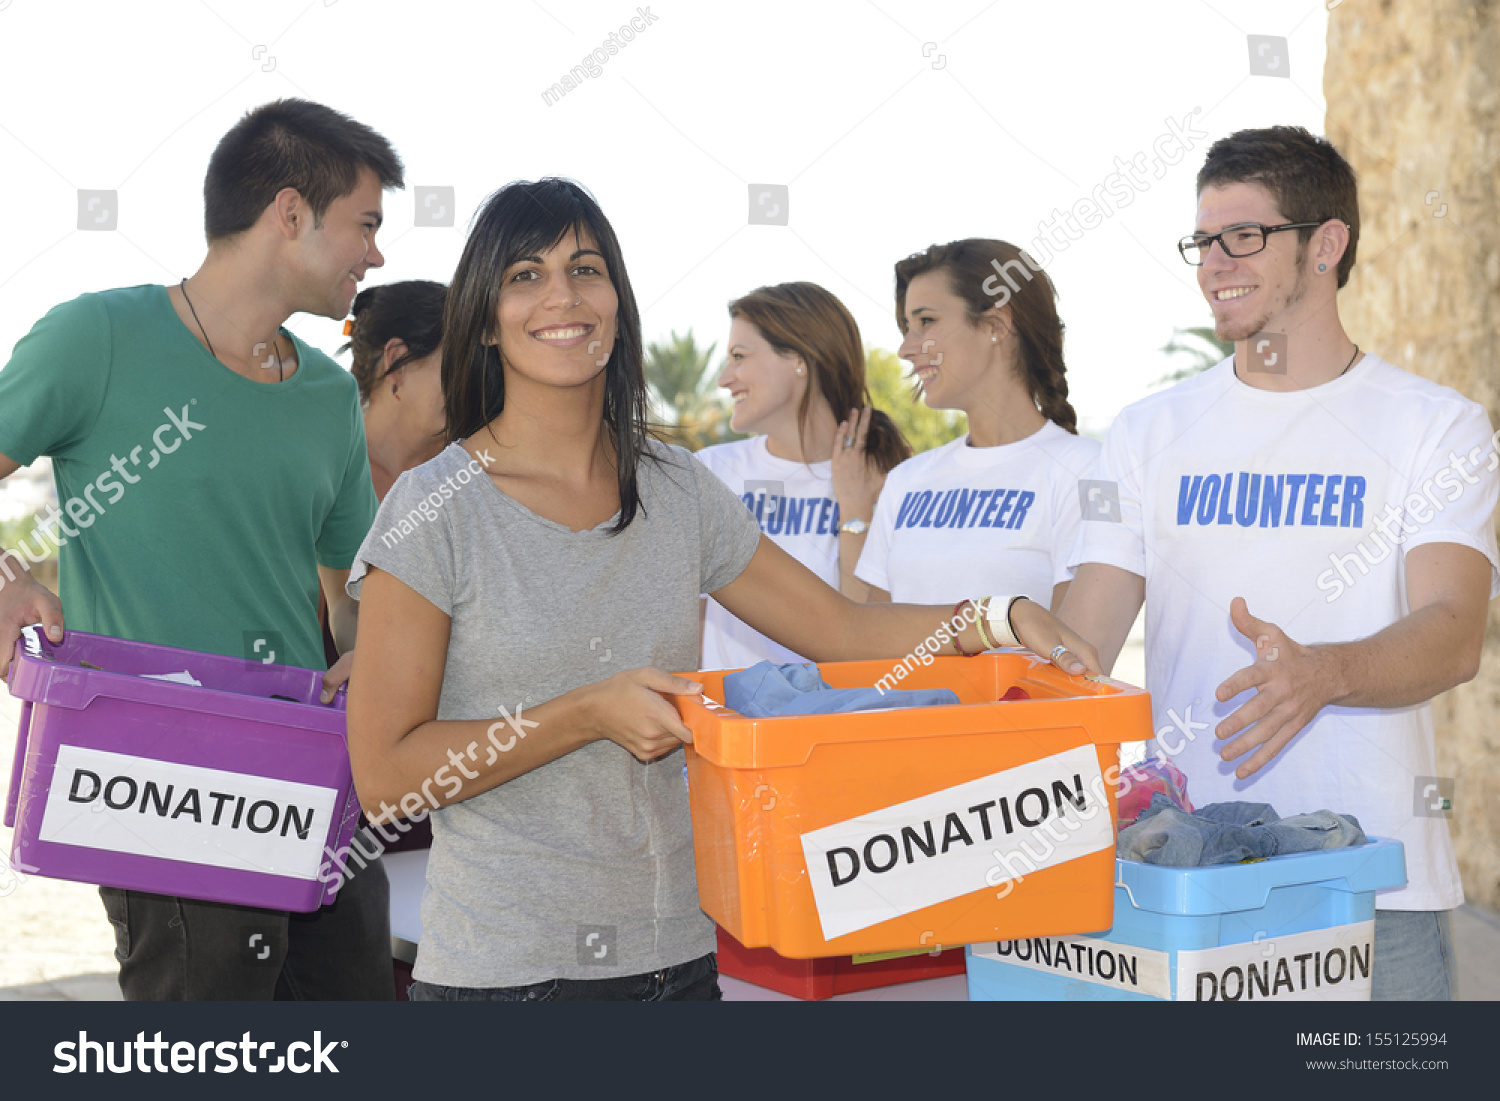 Charity Clothing Pickup Collecting Clothing for a Cause *Since November Collecting Clothing for a Cause *Since November